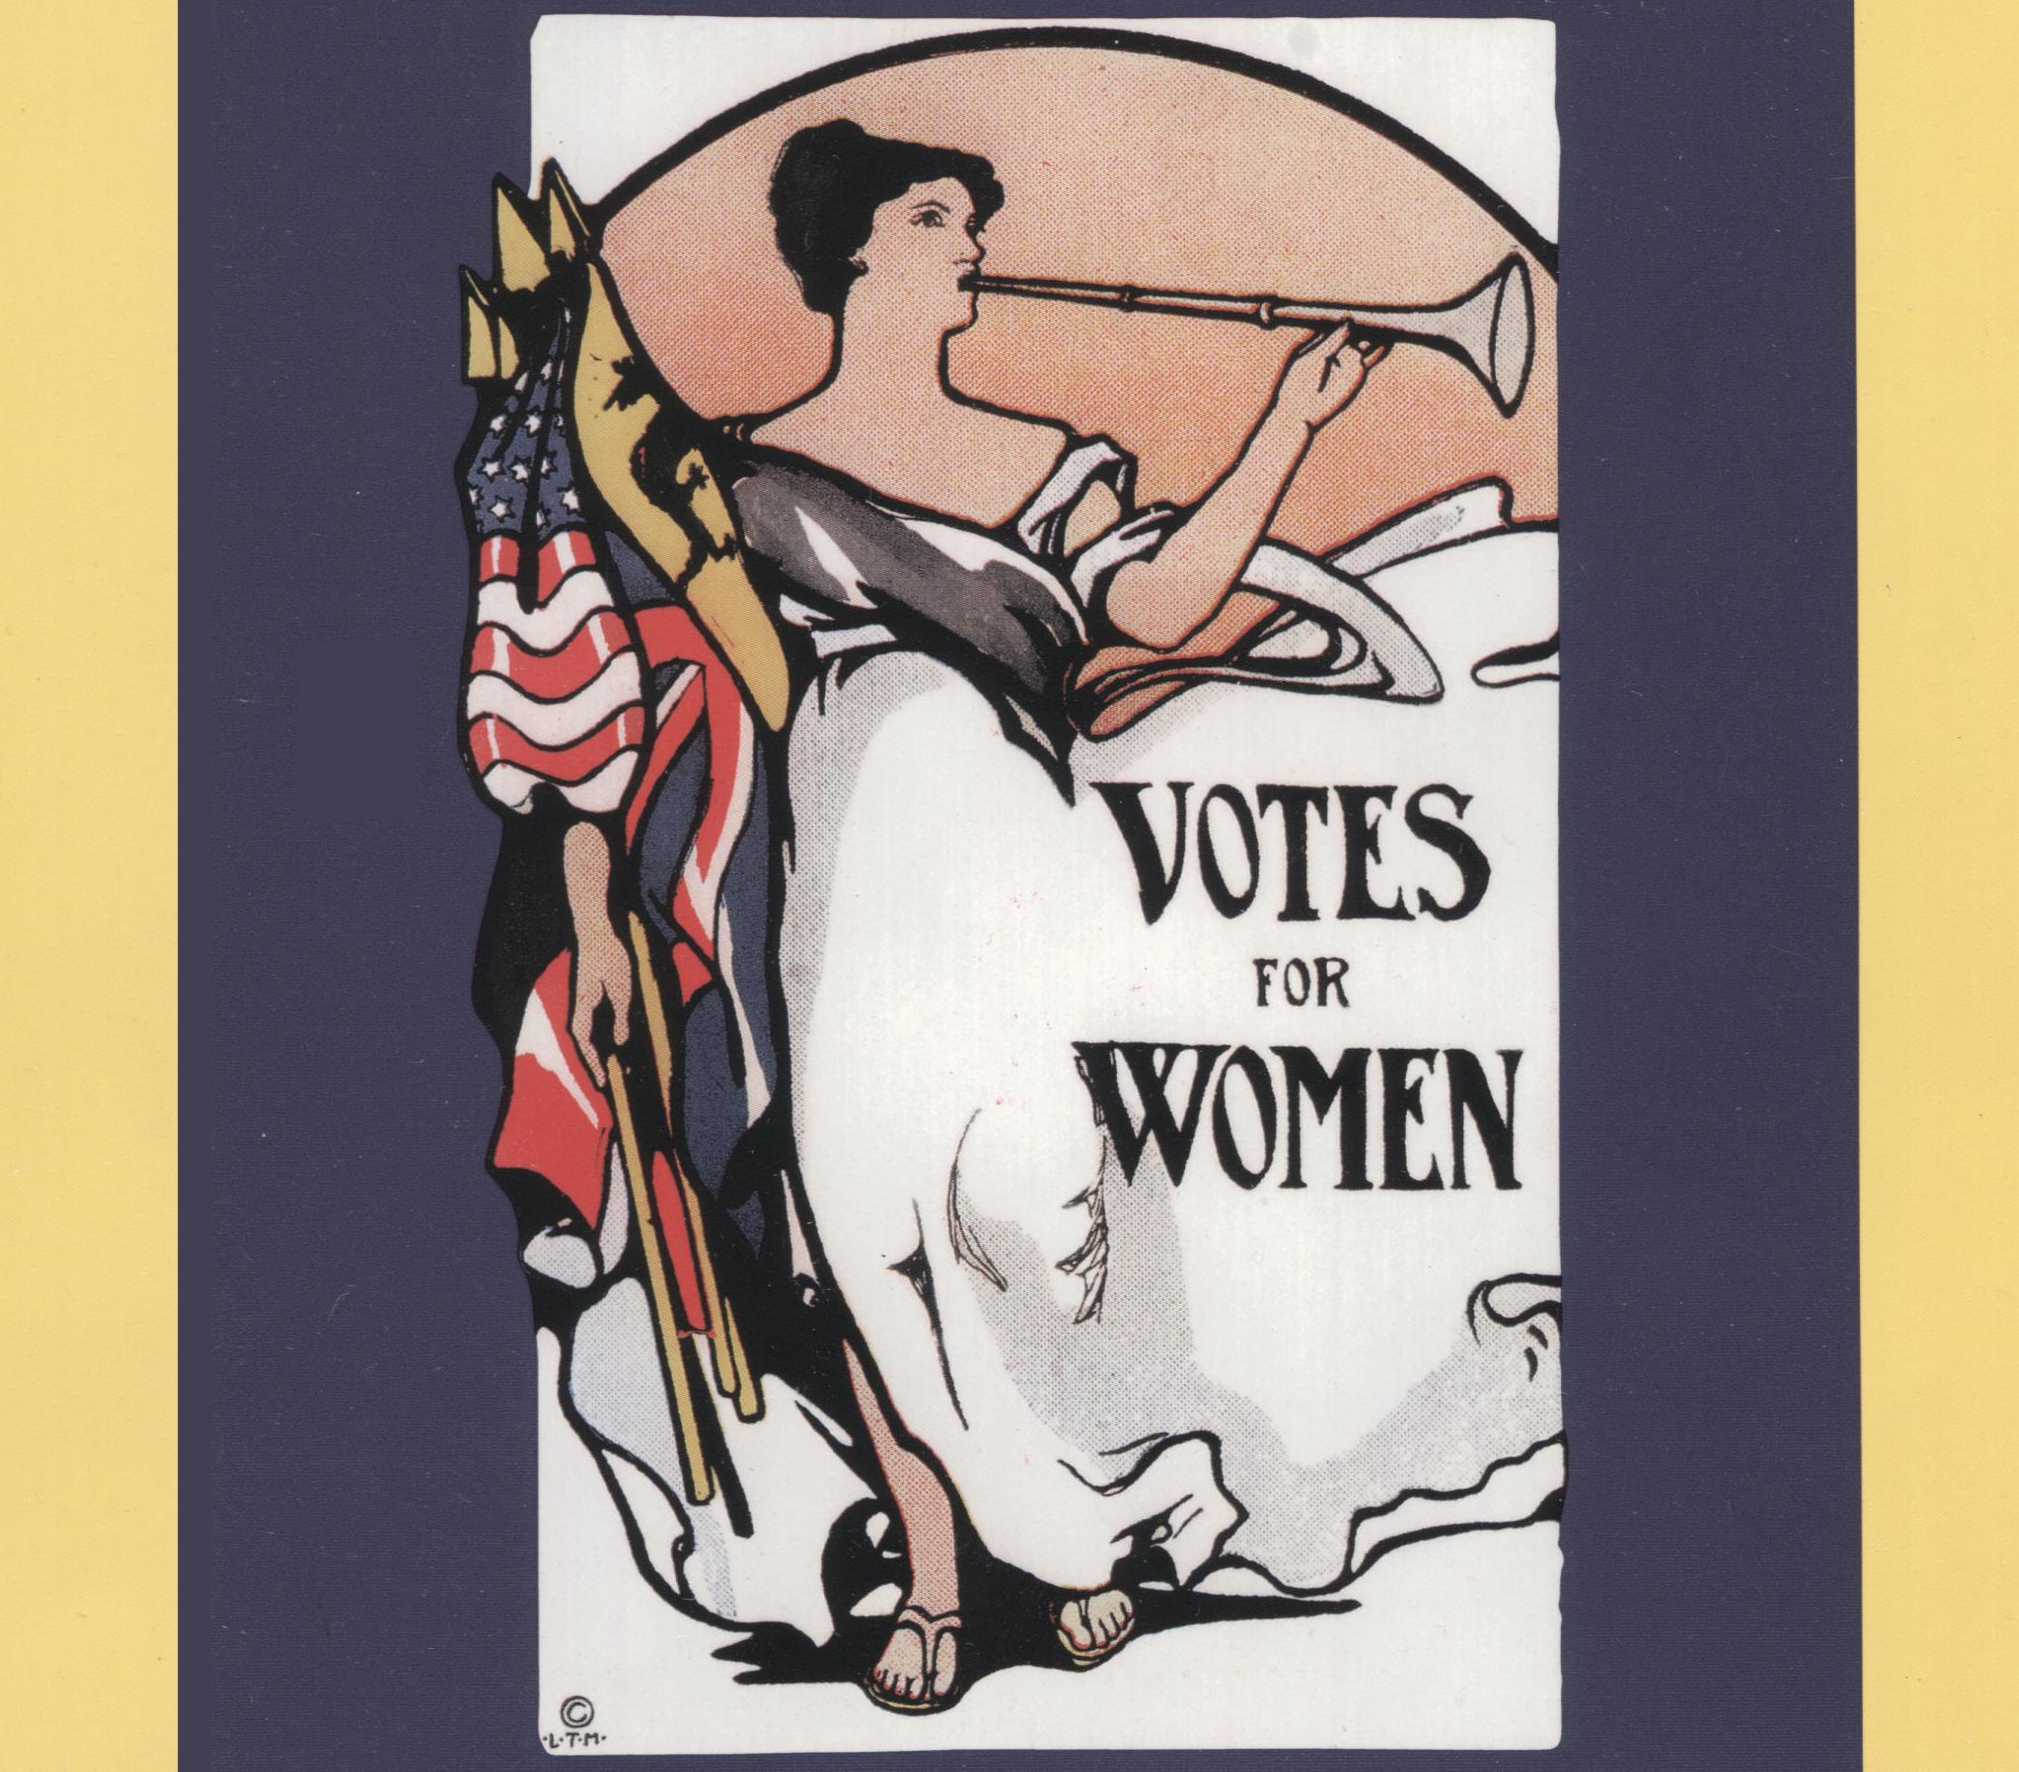 VOTES FOR WOMEN ~ UNFINISHED BUSINESS